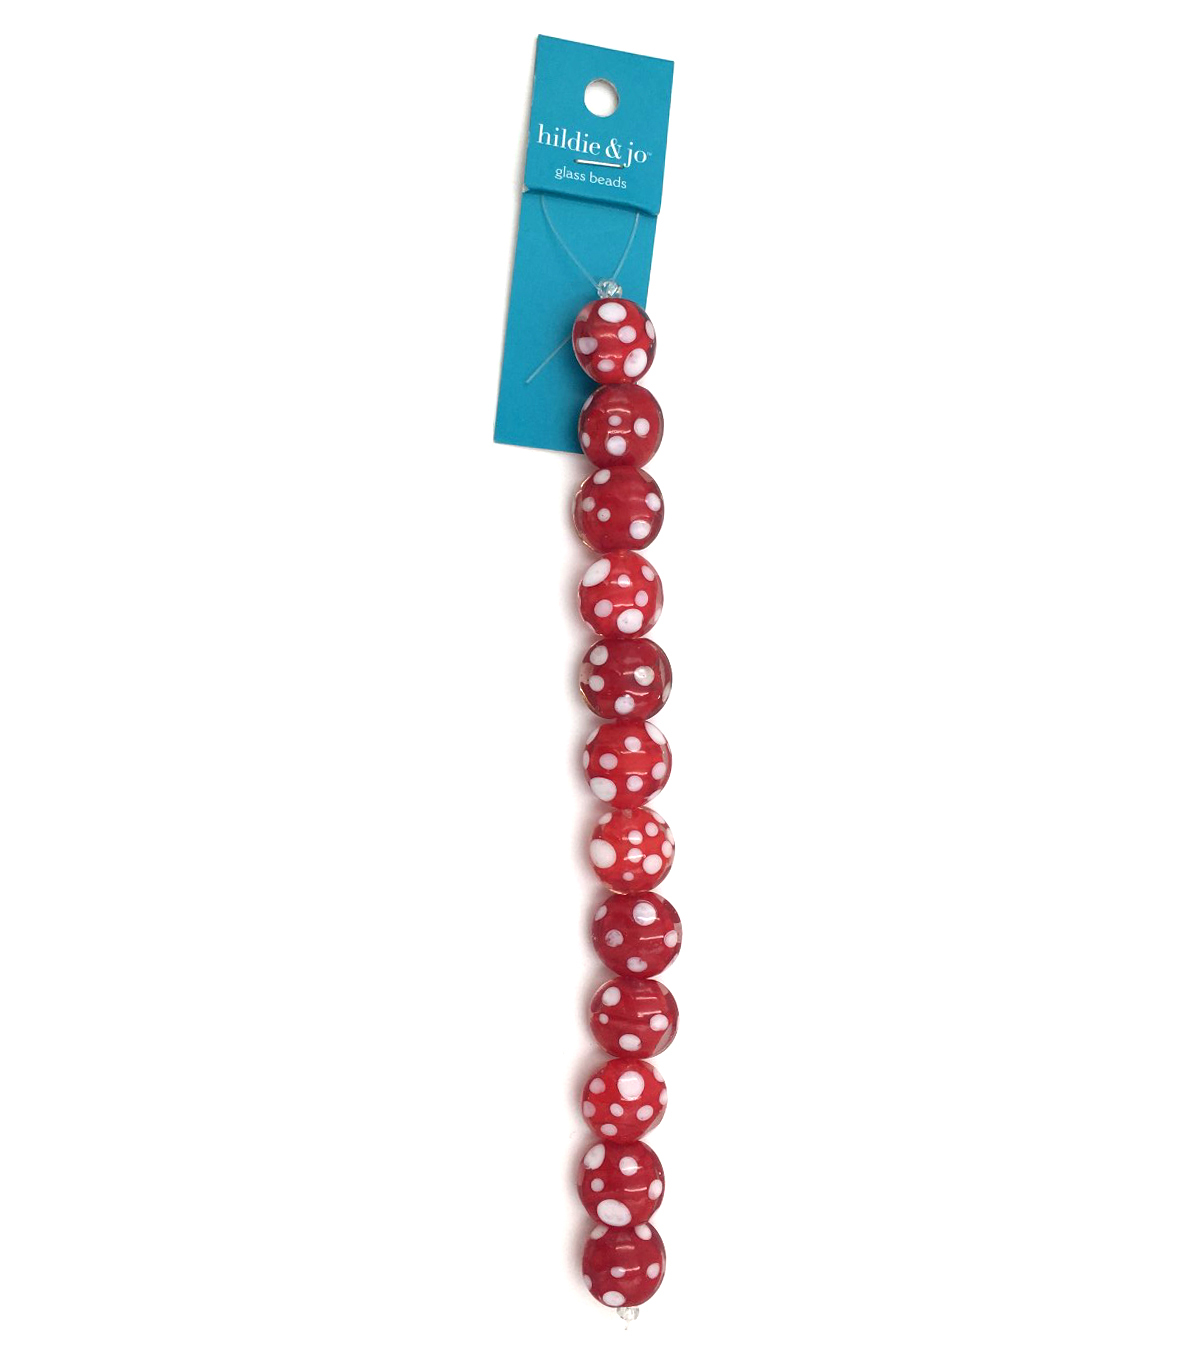 hildie & jo Round Strung Beads-Red with White Dots